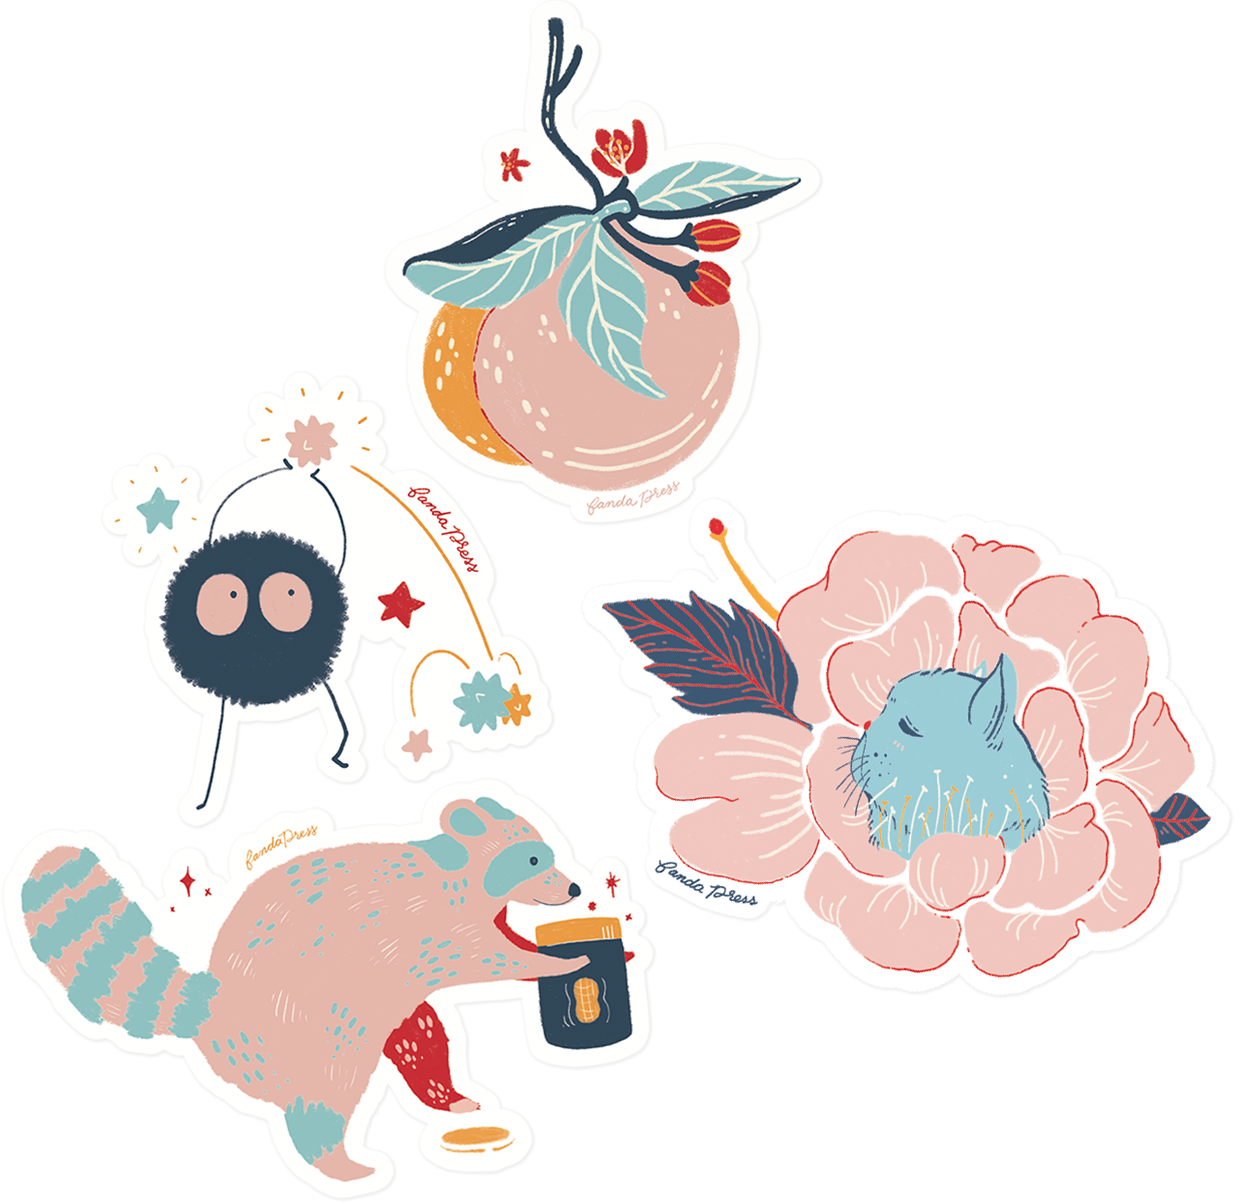 A collection of stickers